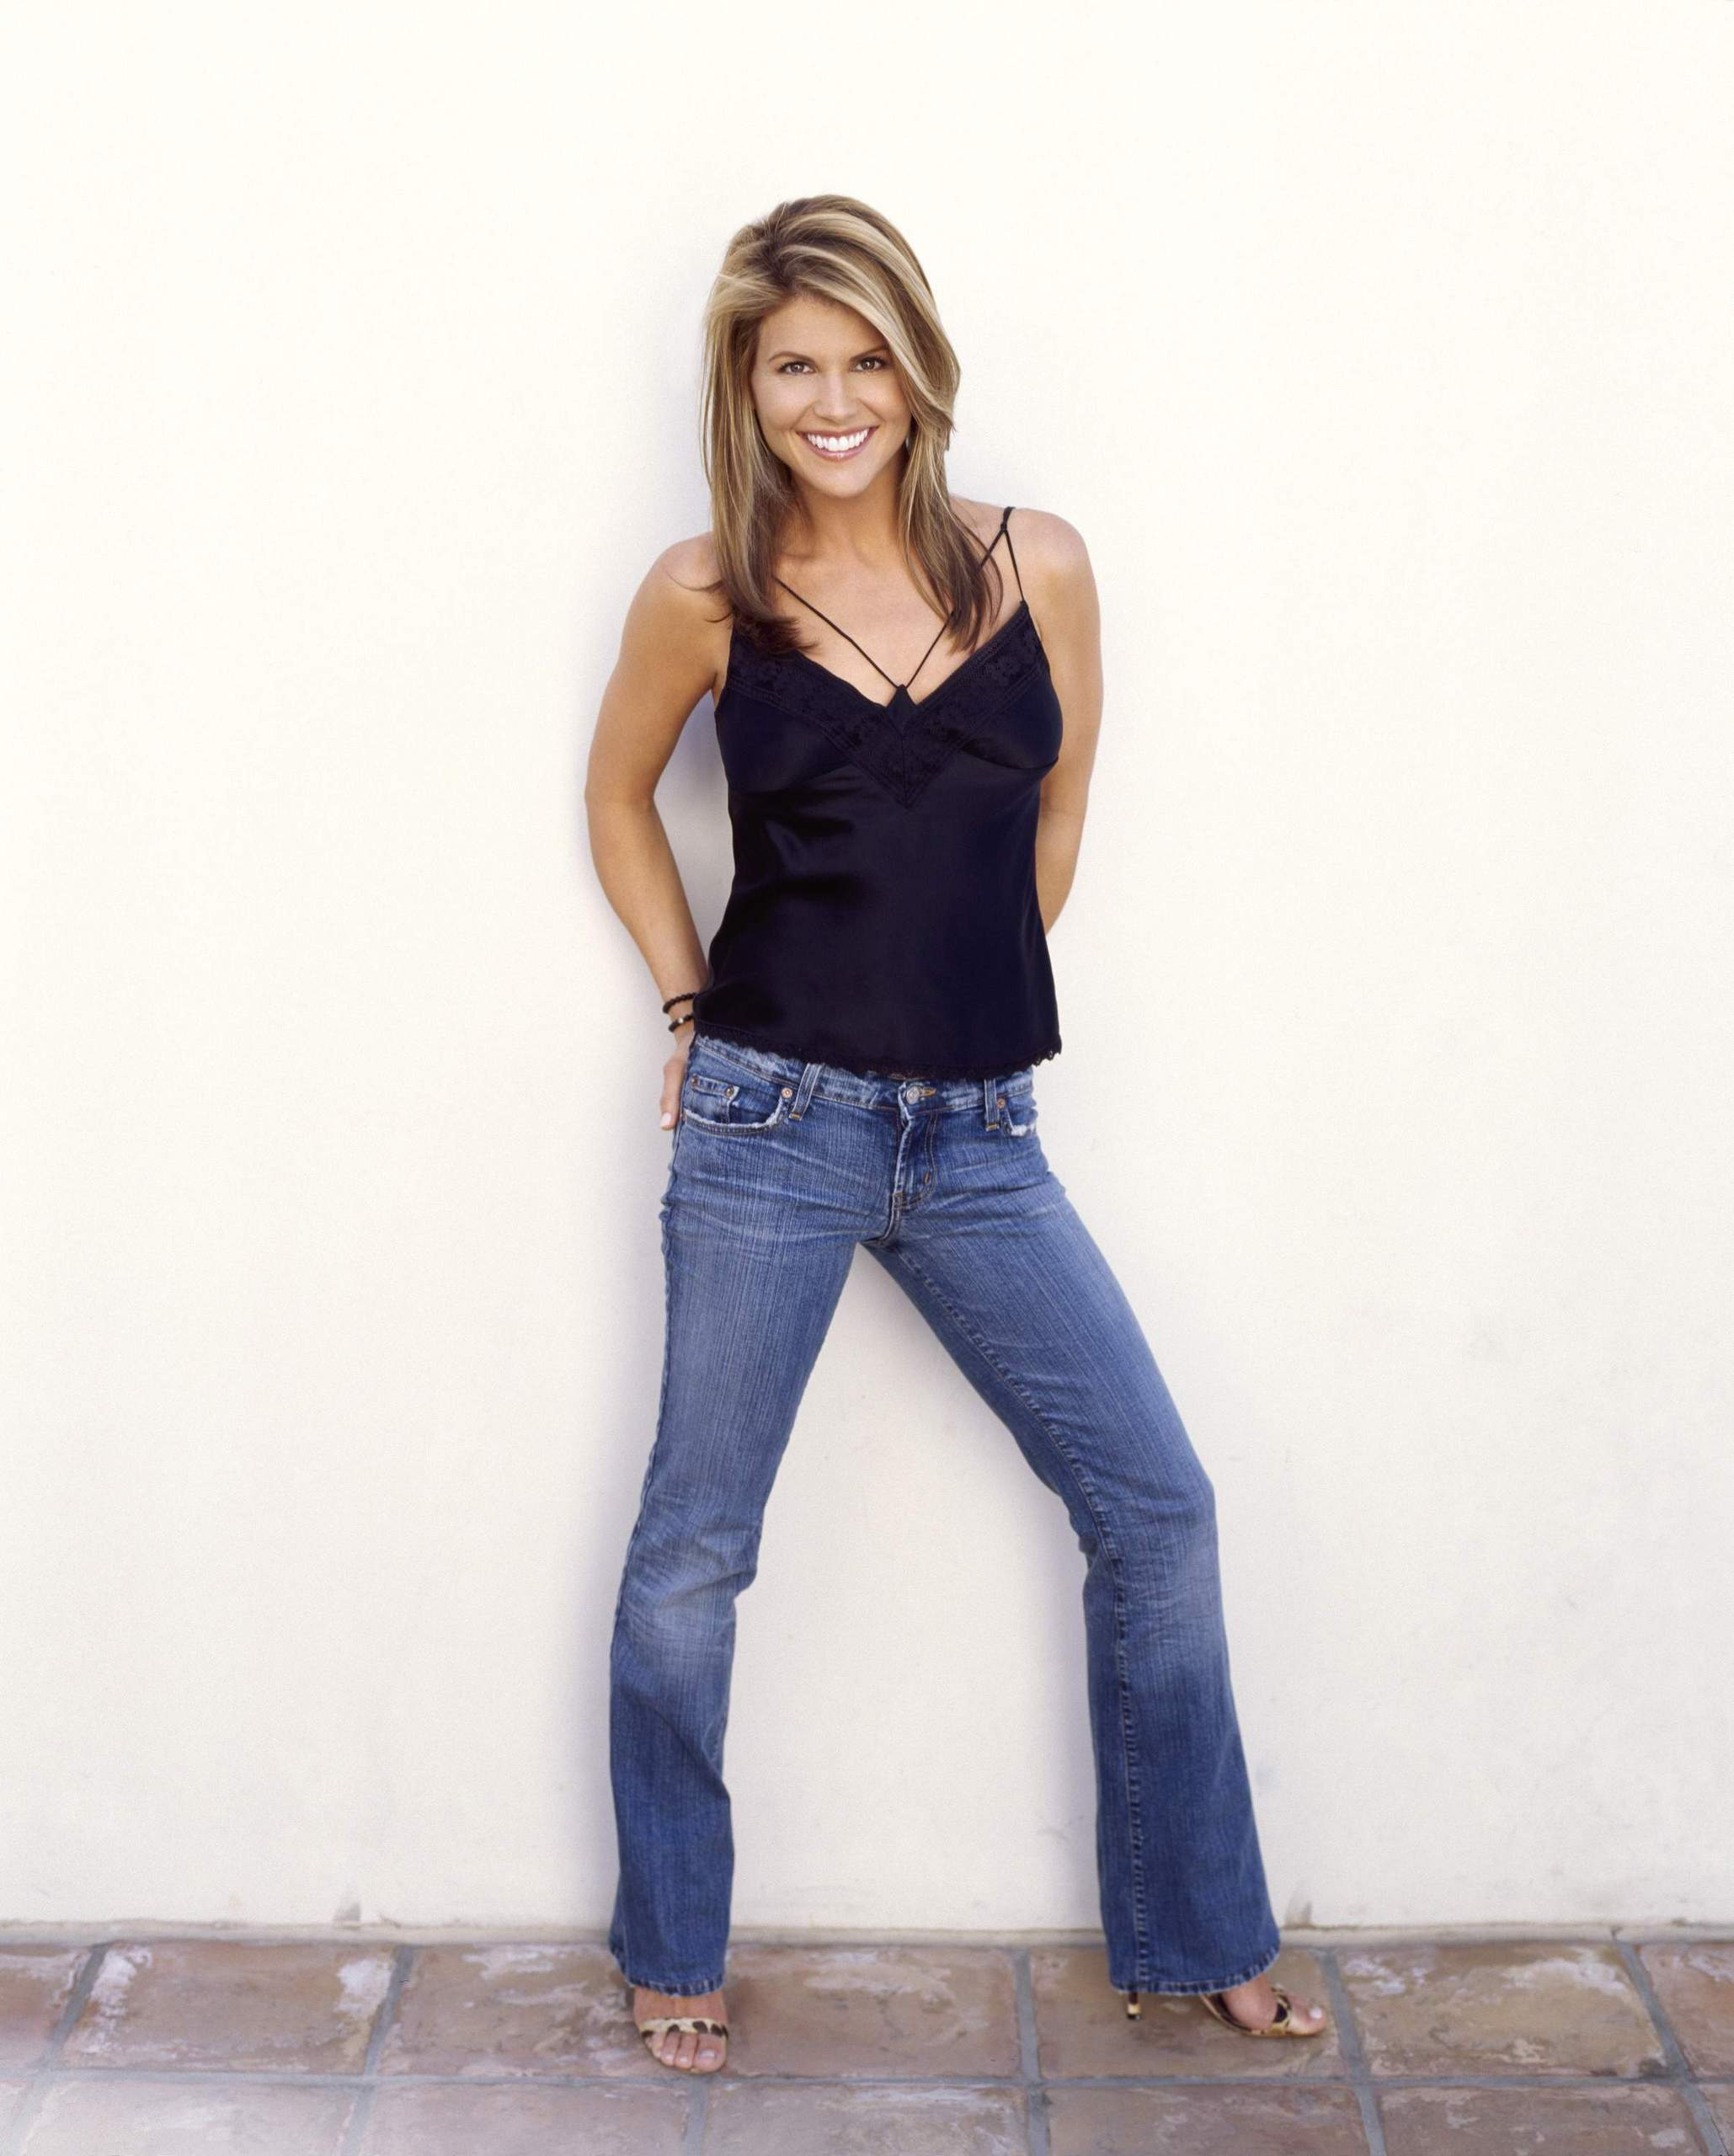 Lori Loughlin - Images Hot